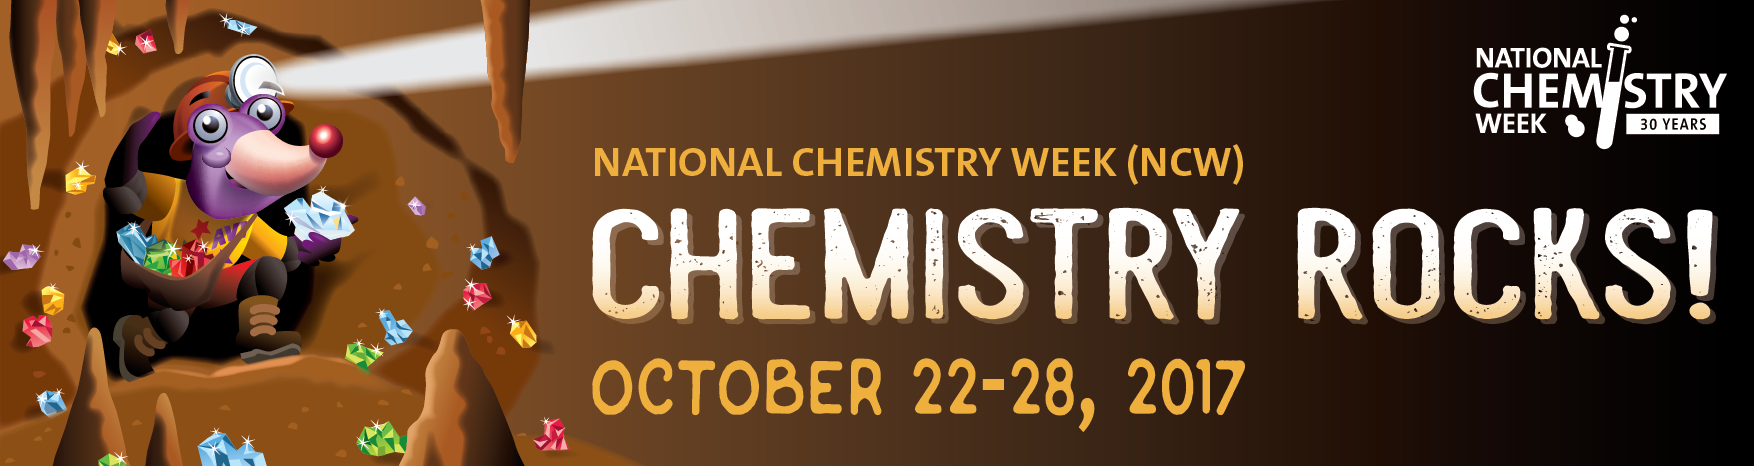 "The National Chemistry Week theme is ""Chemistry Colors Our World"" celebrated from October 18-24, 2015."